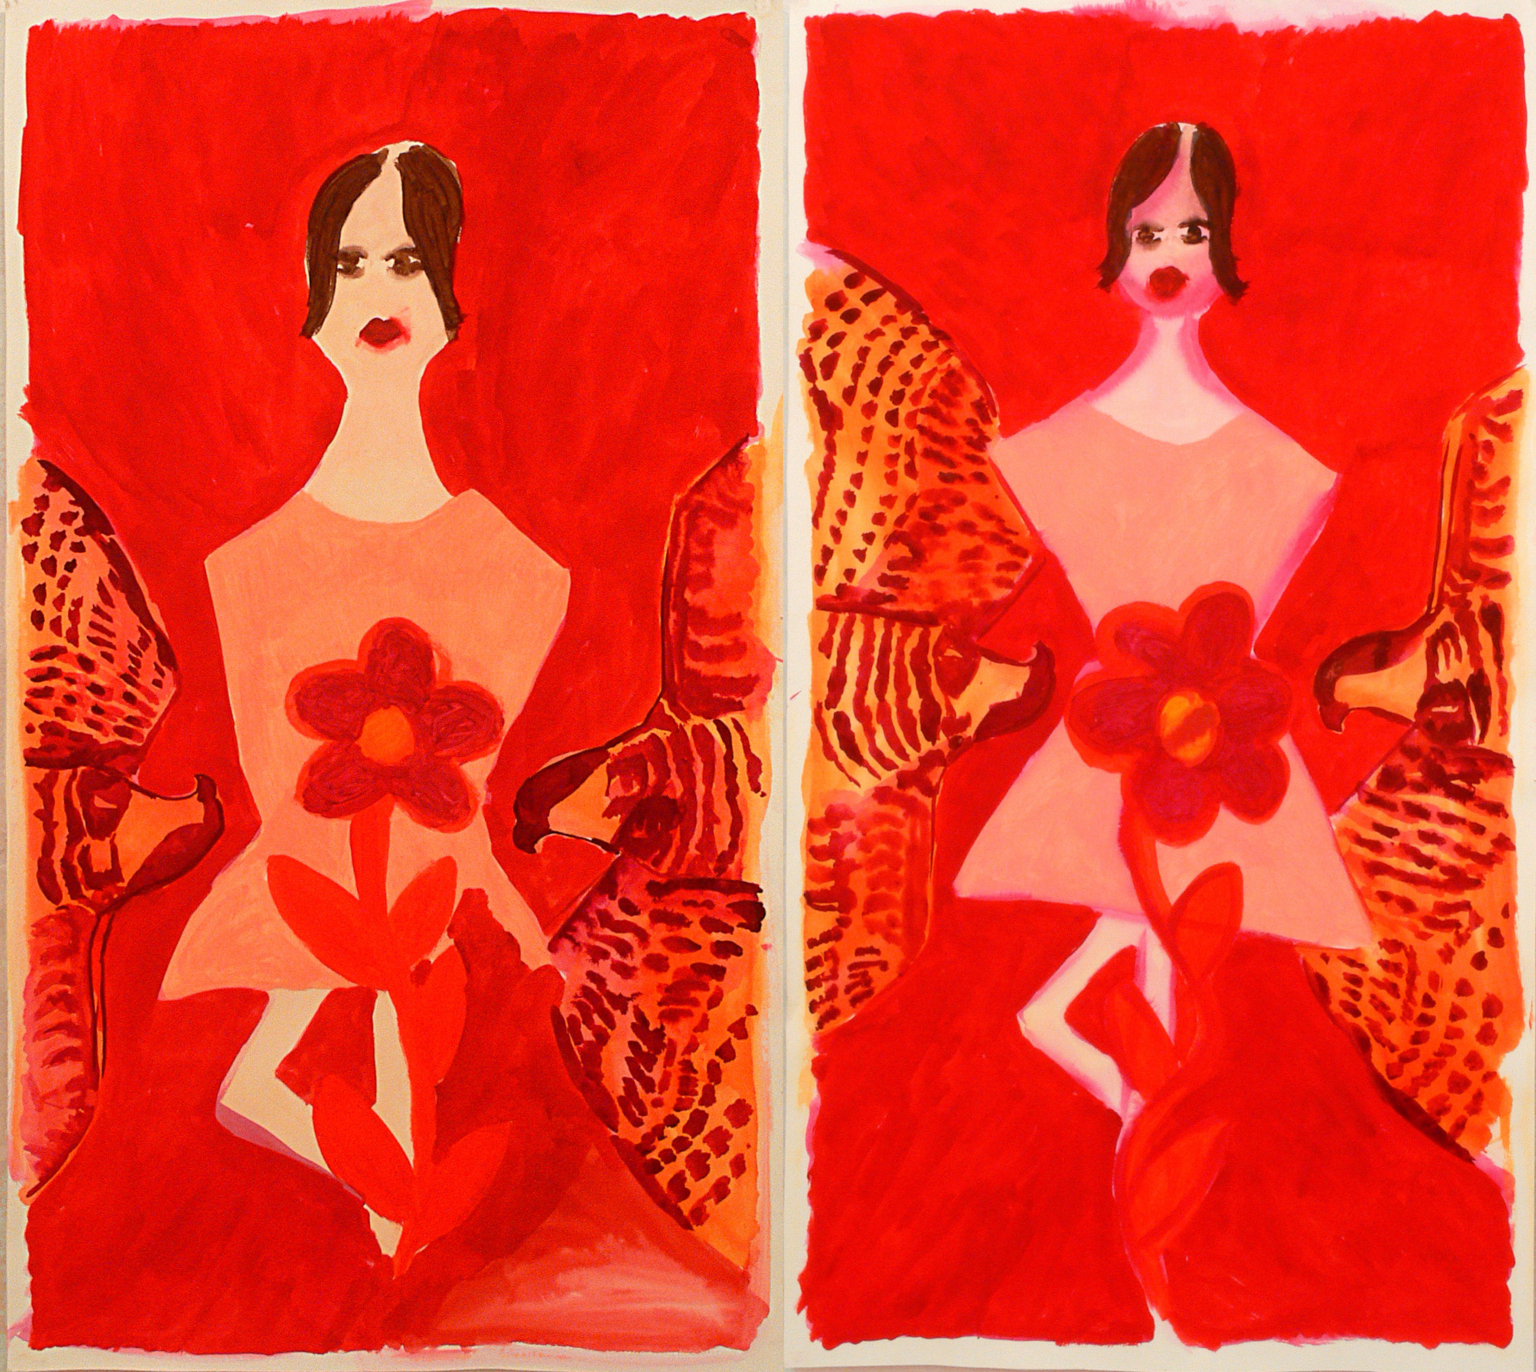 2 x A dancer, flower and two birds, 2009